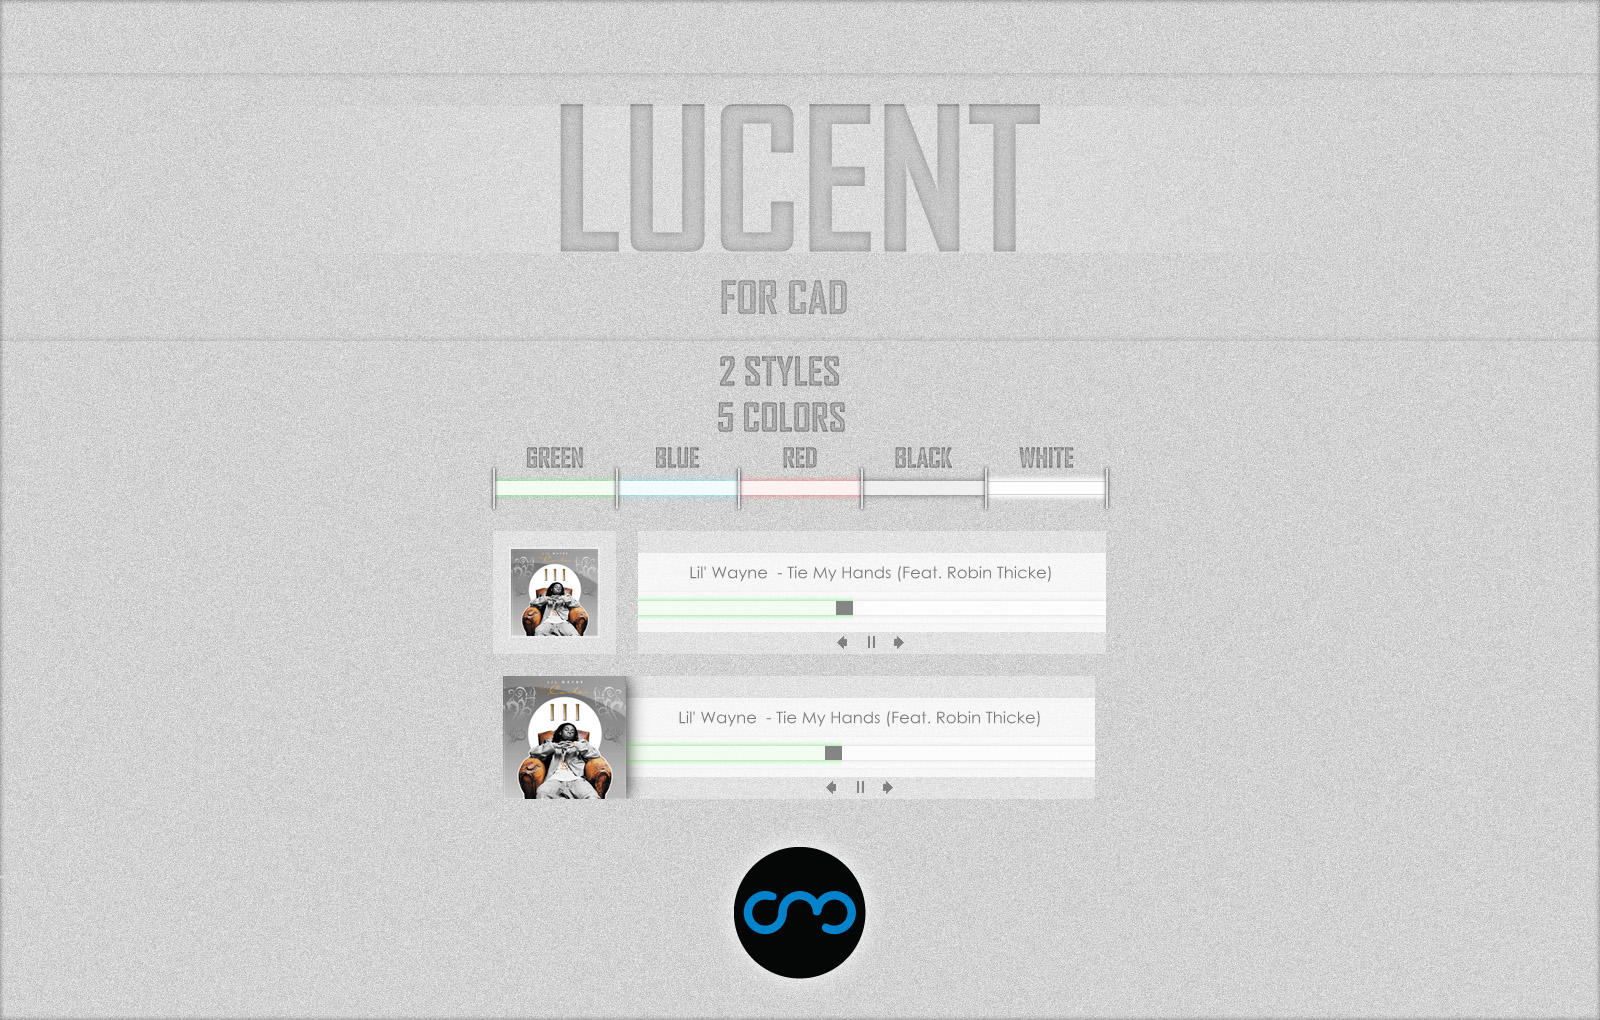 Lucent for CAD by C---M